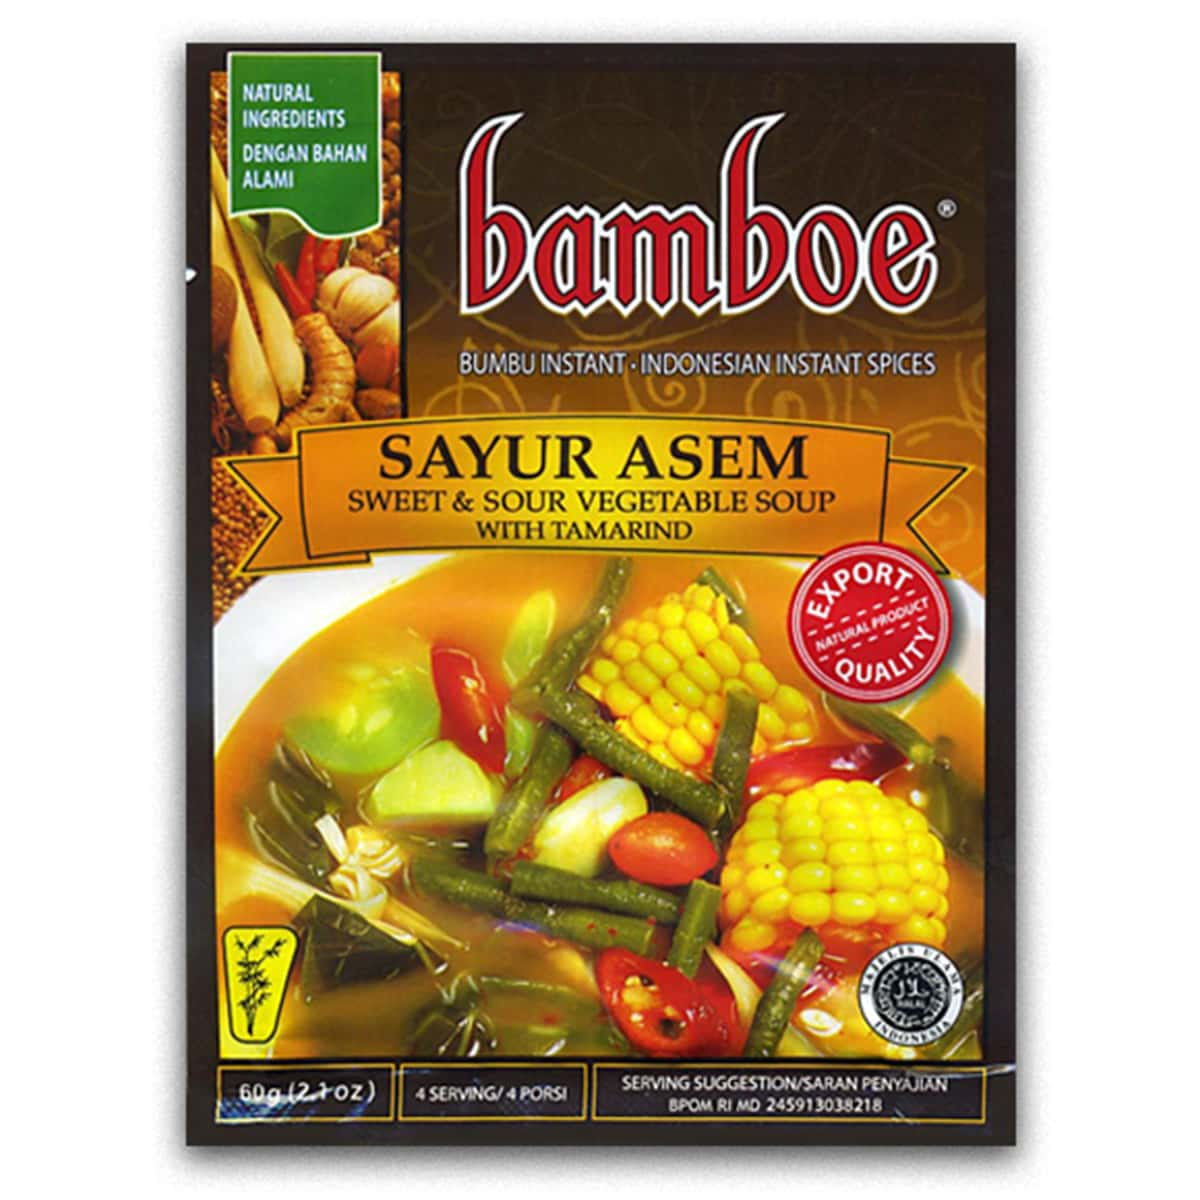 Buy Bamboe Sayur Asem (Sweet and Sour Vegetable Soup with Tamarind) - 60 gm